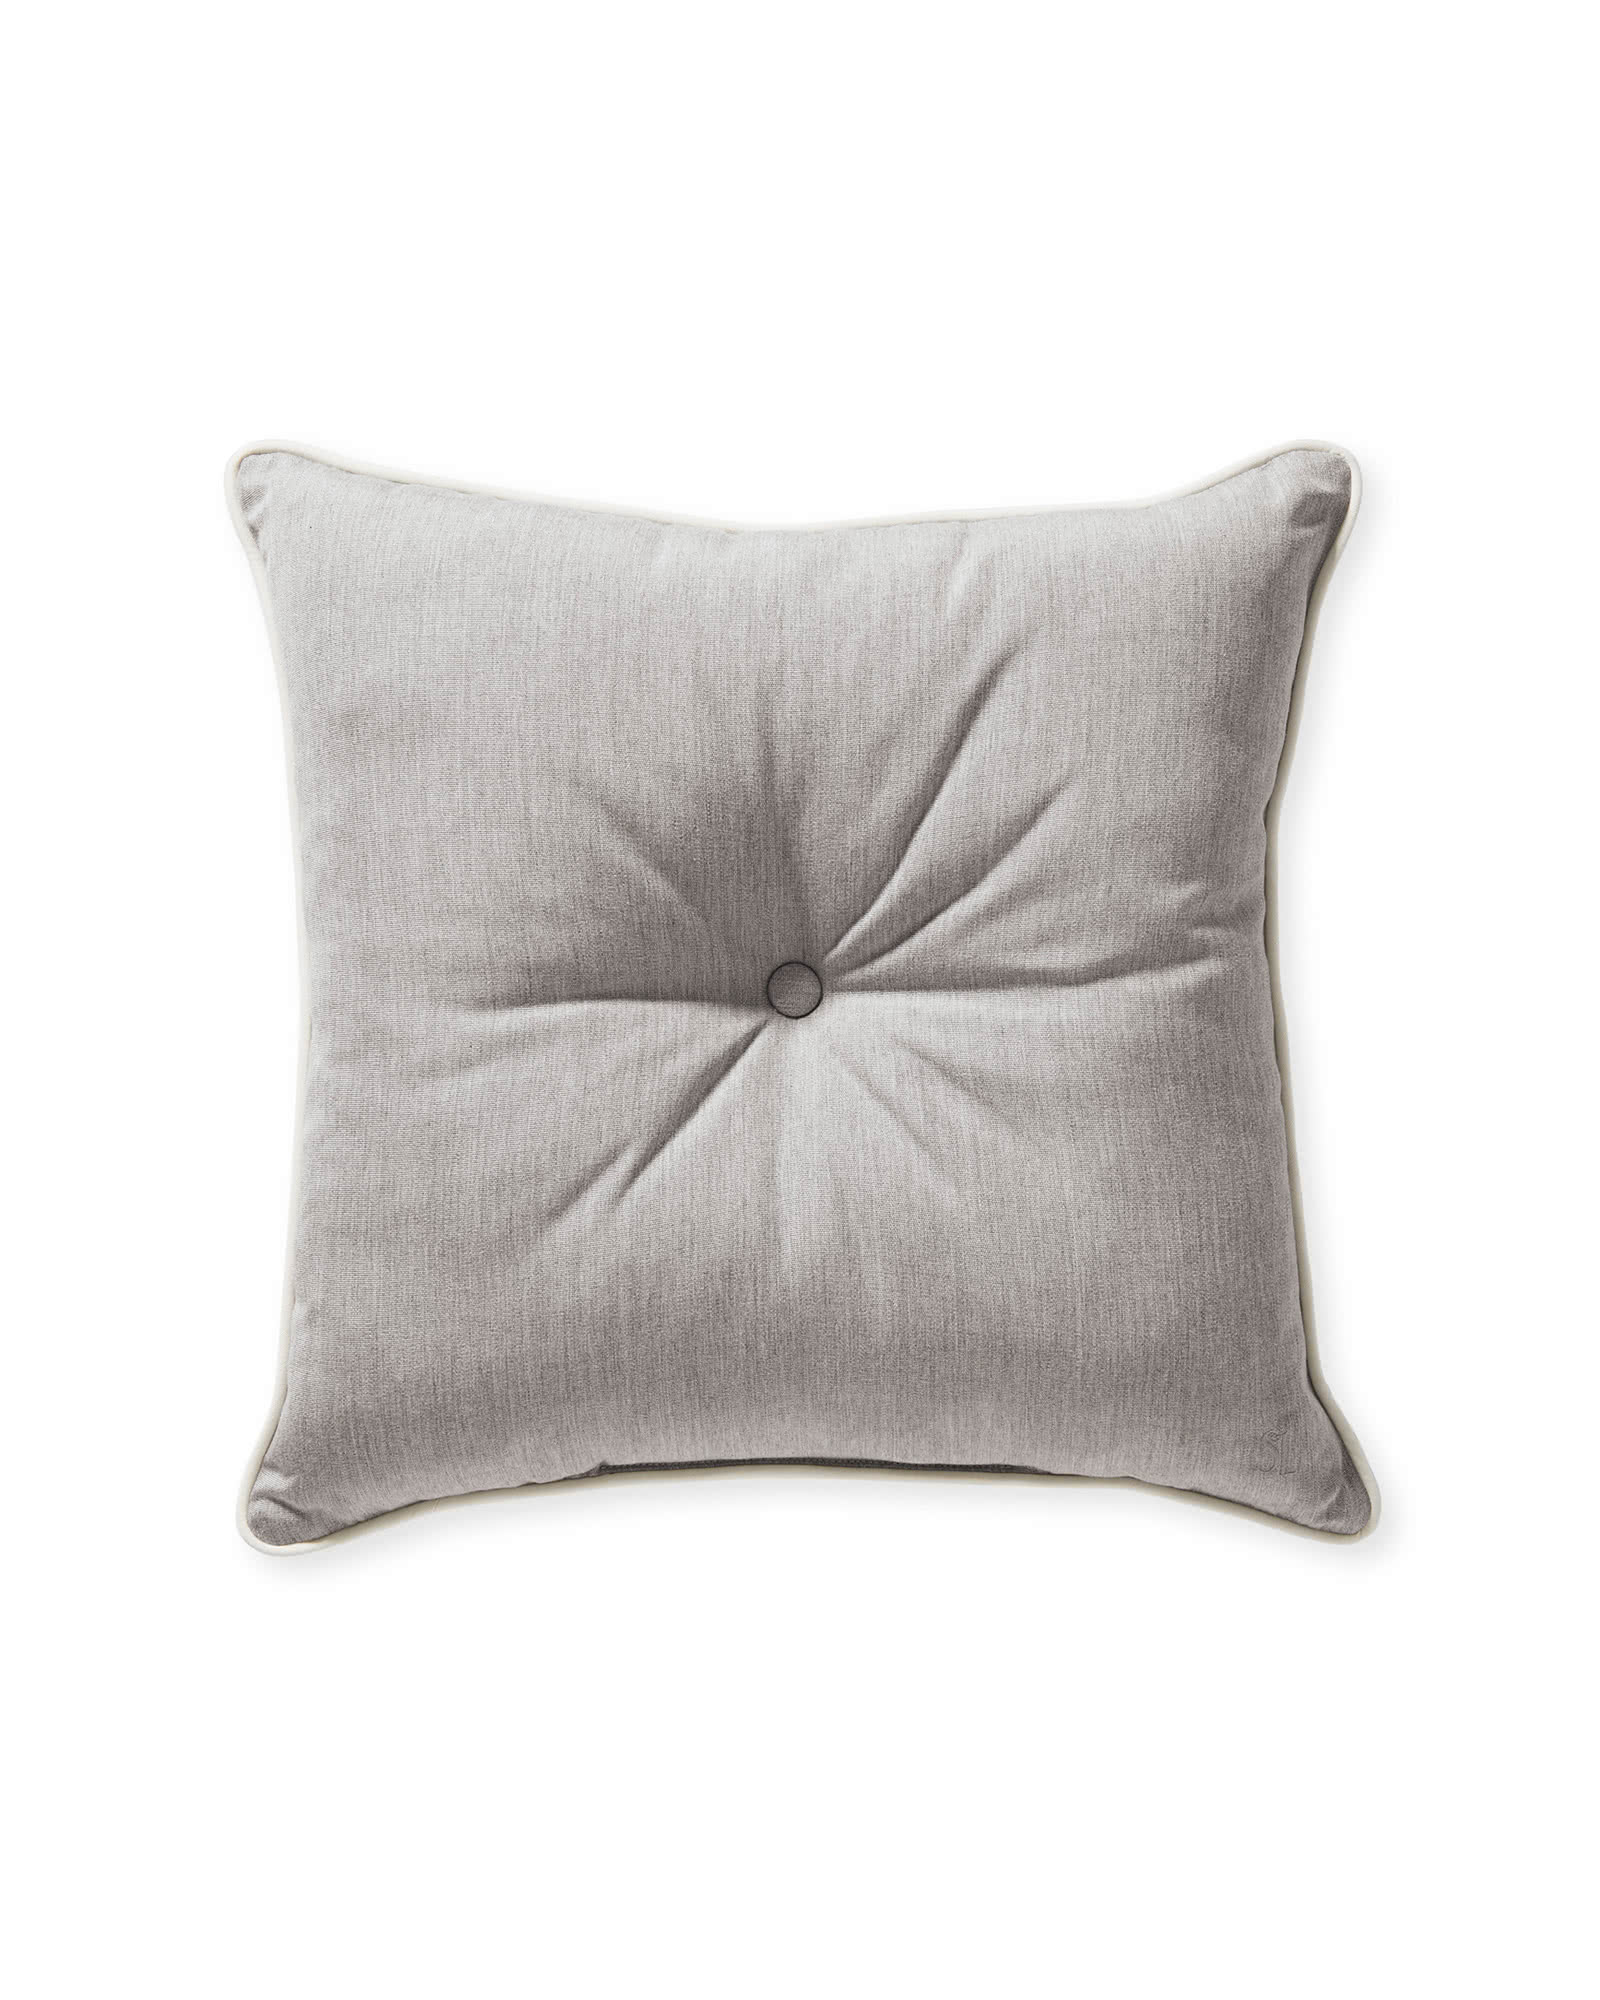 Lido Pillow, Smoke